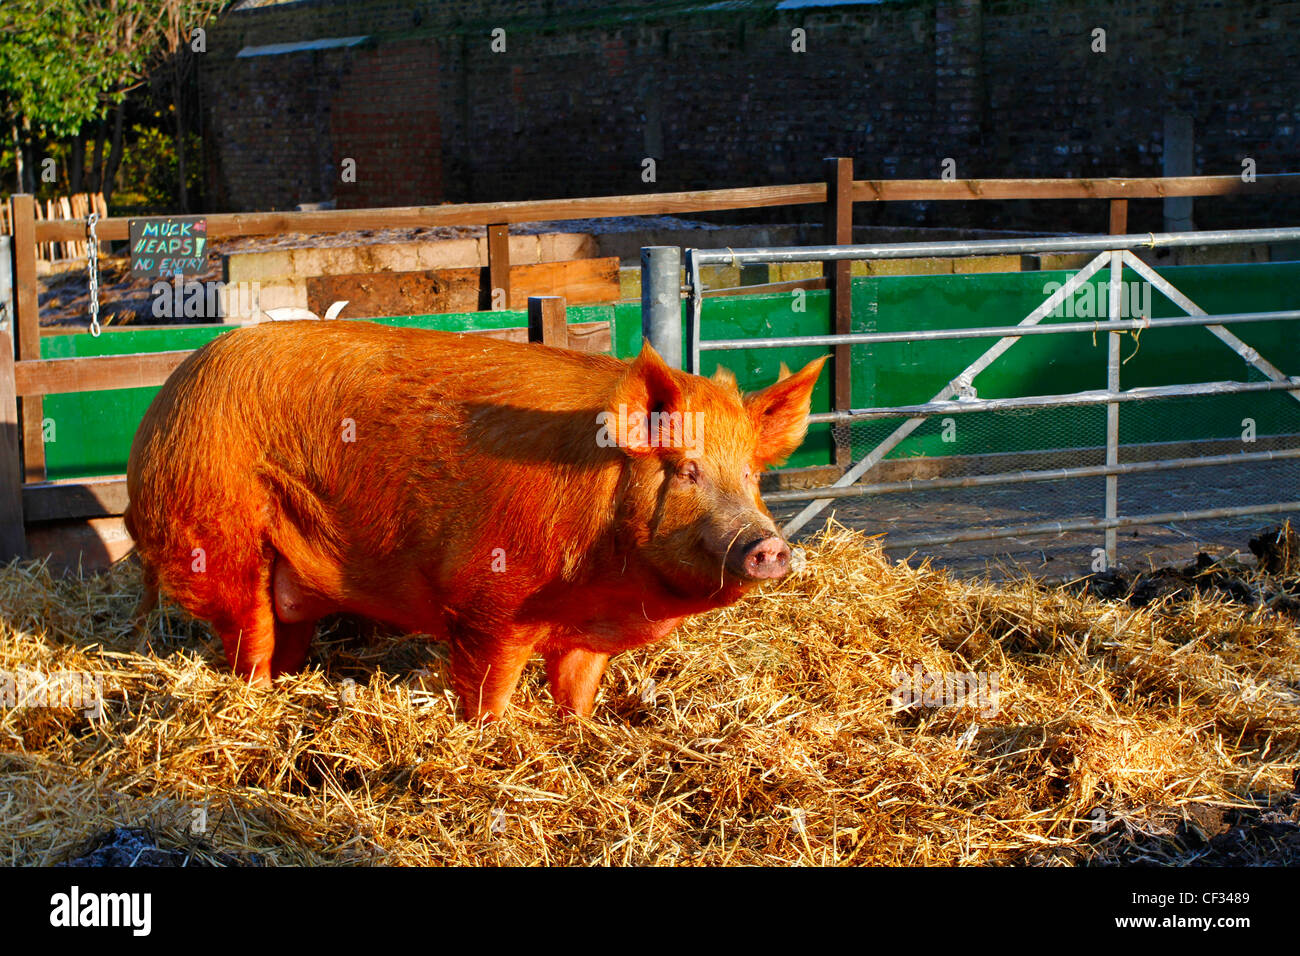 A Tamworth sow at Hackney City Farm, a community project offering city dwellers the opportunity to experience farming - Stock Image